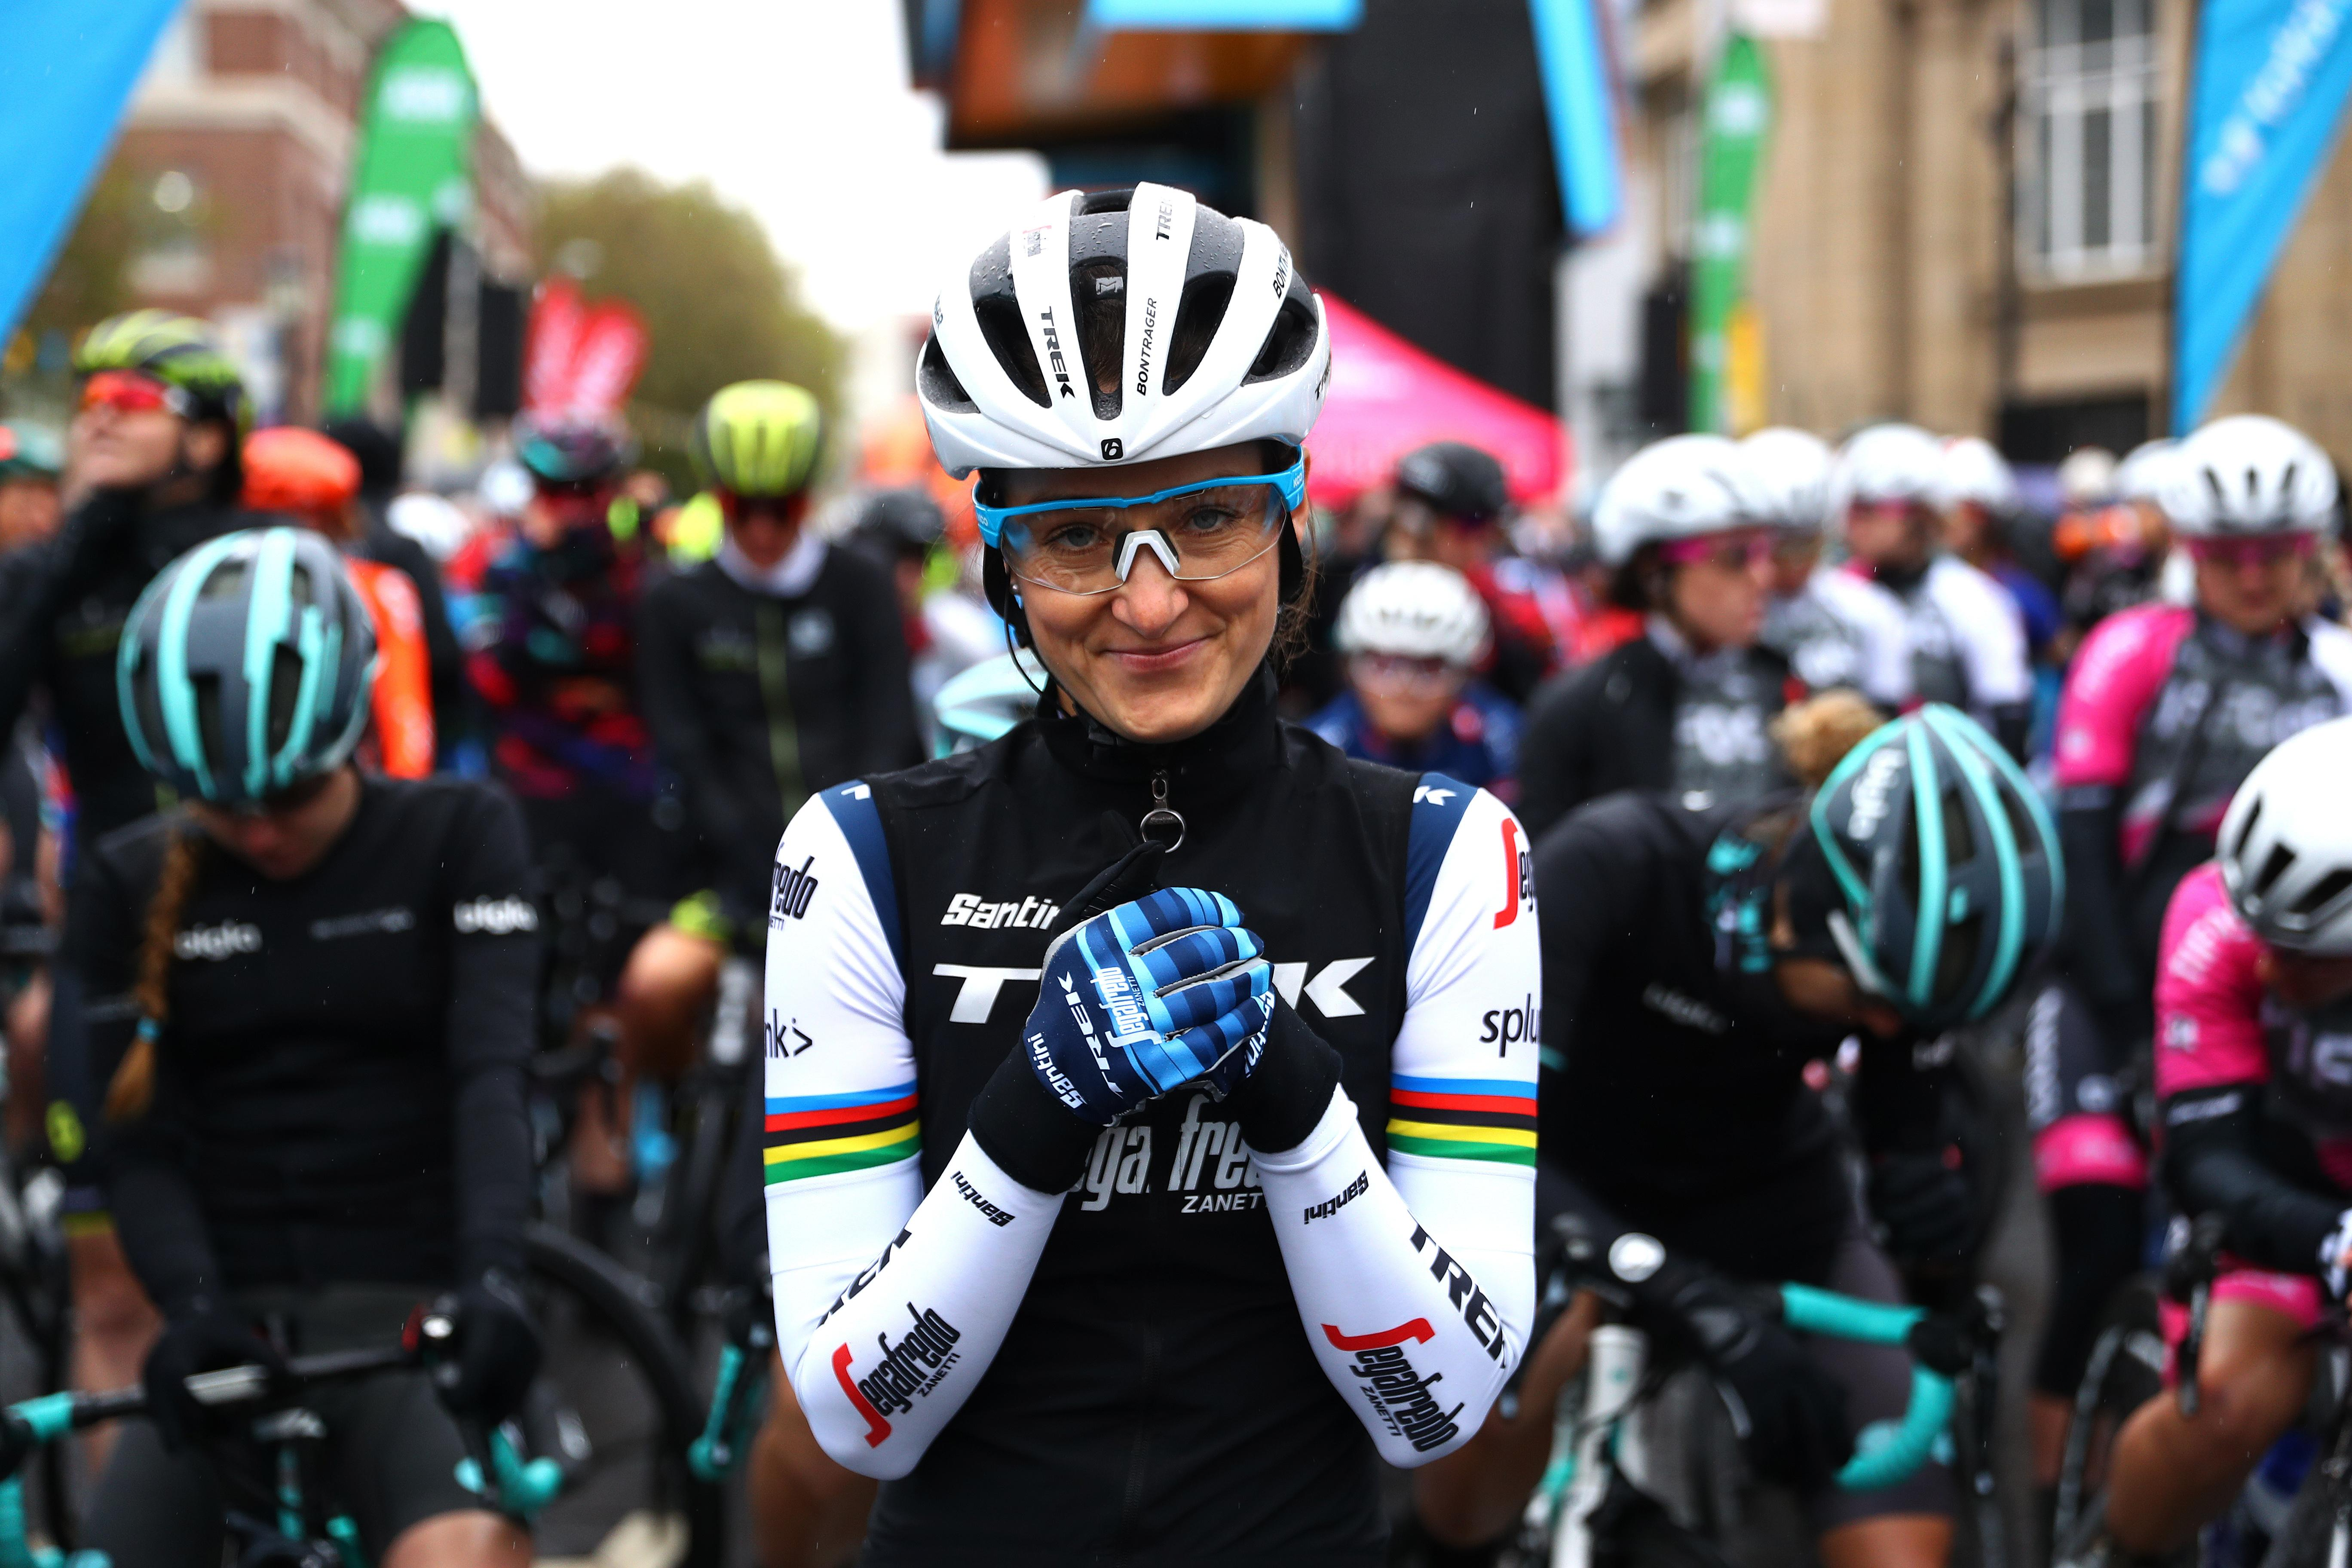 Lizzie Deignan: 'For me, cycling is less important than it's ever been'